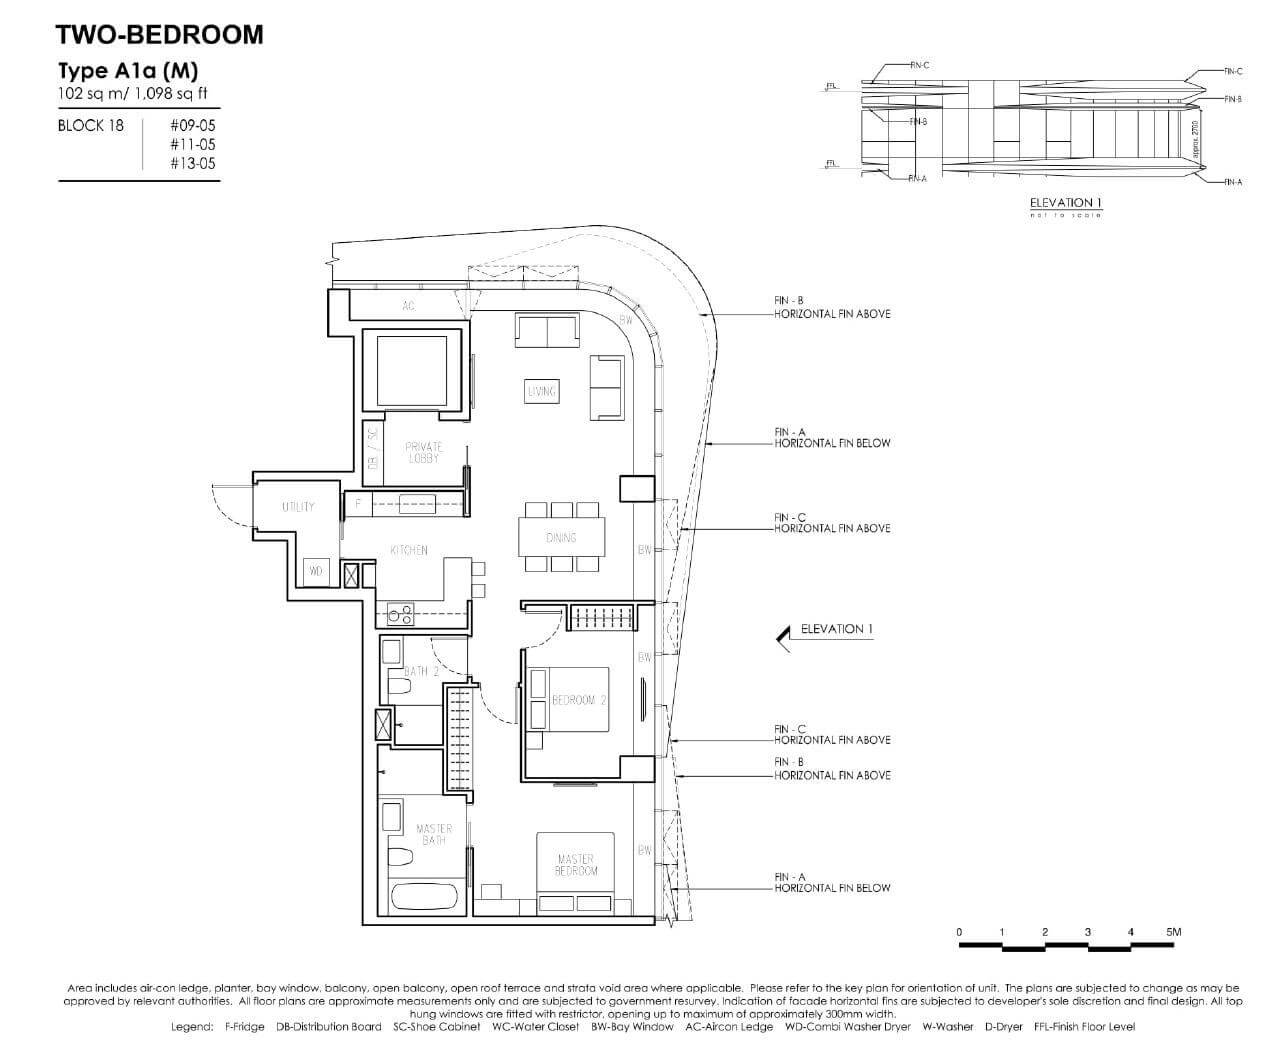 New Futura - Floor Plans - 2 Bedroom - Type A1a